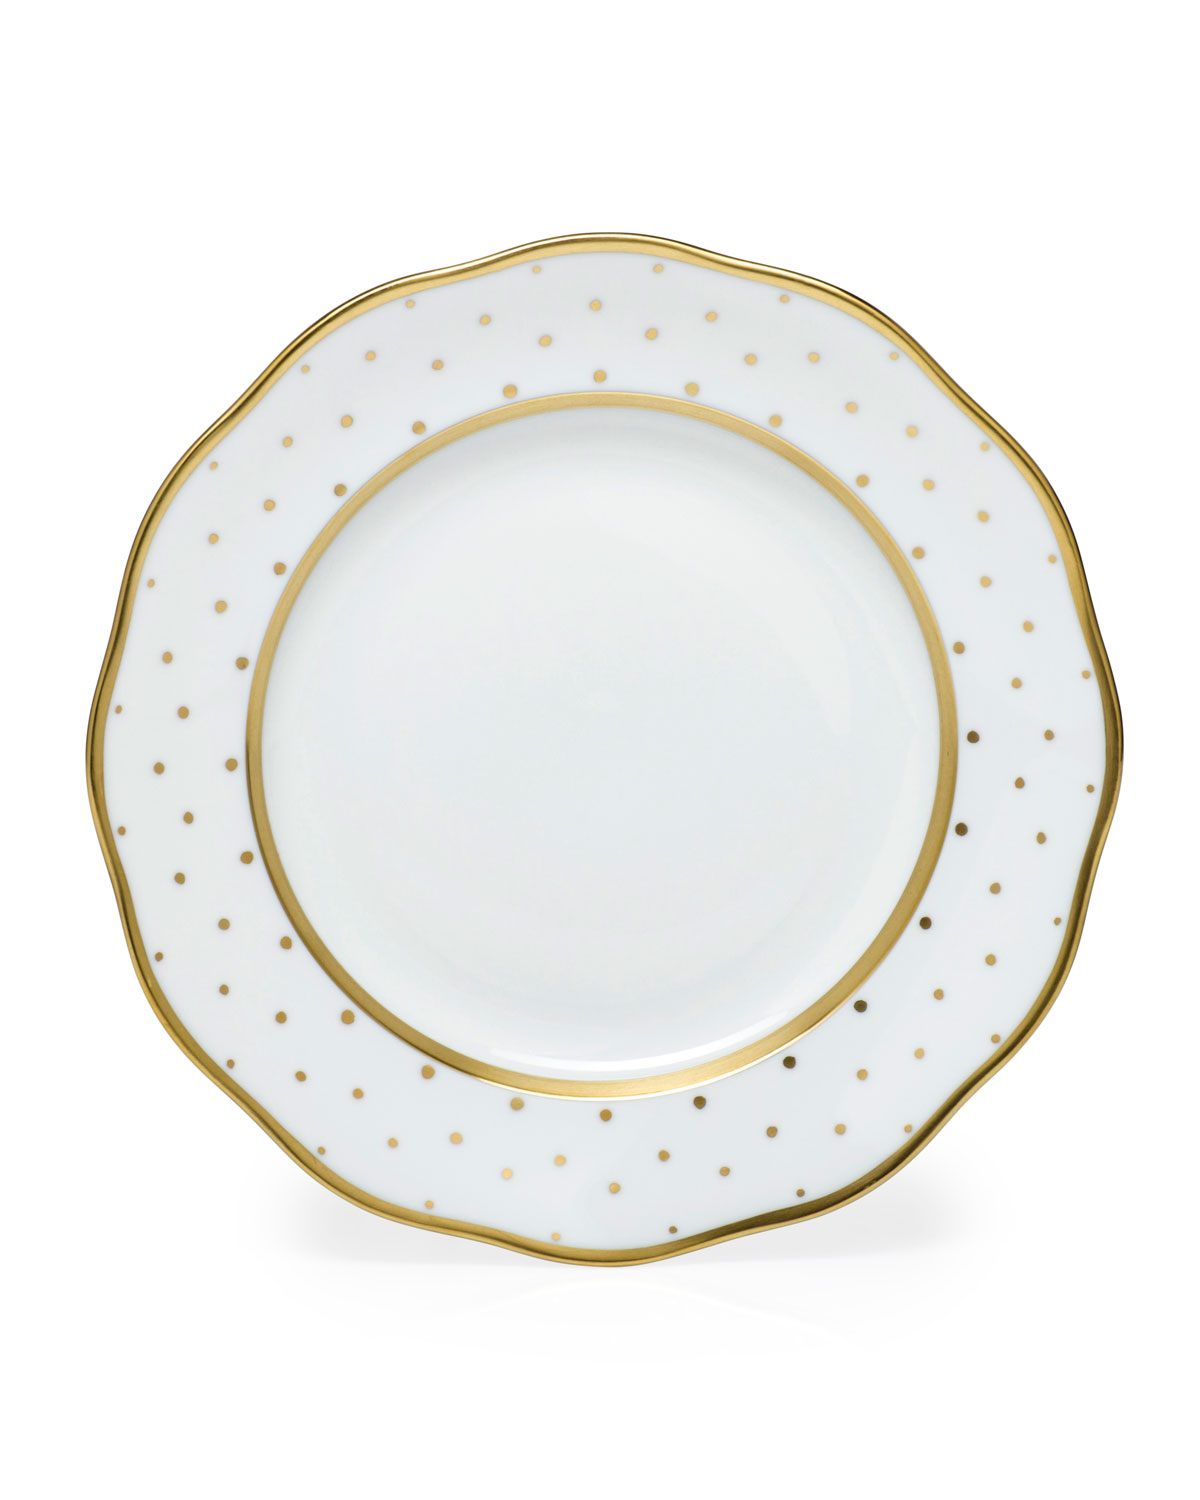 Herend Dinnerwares CONNECT THE DOTS DESSERT PLATE